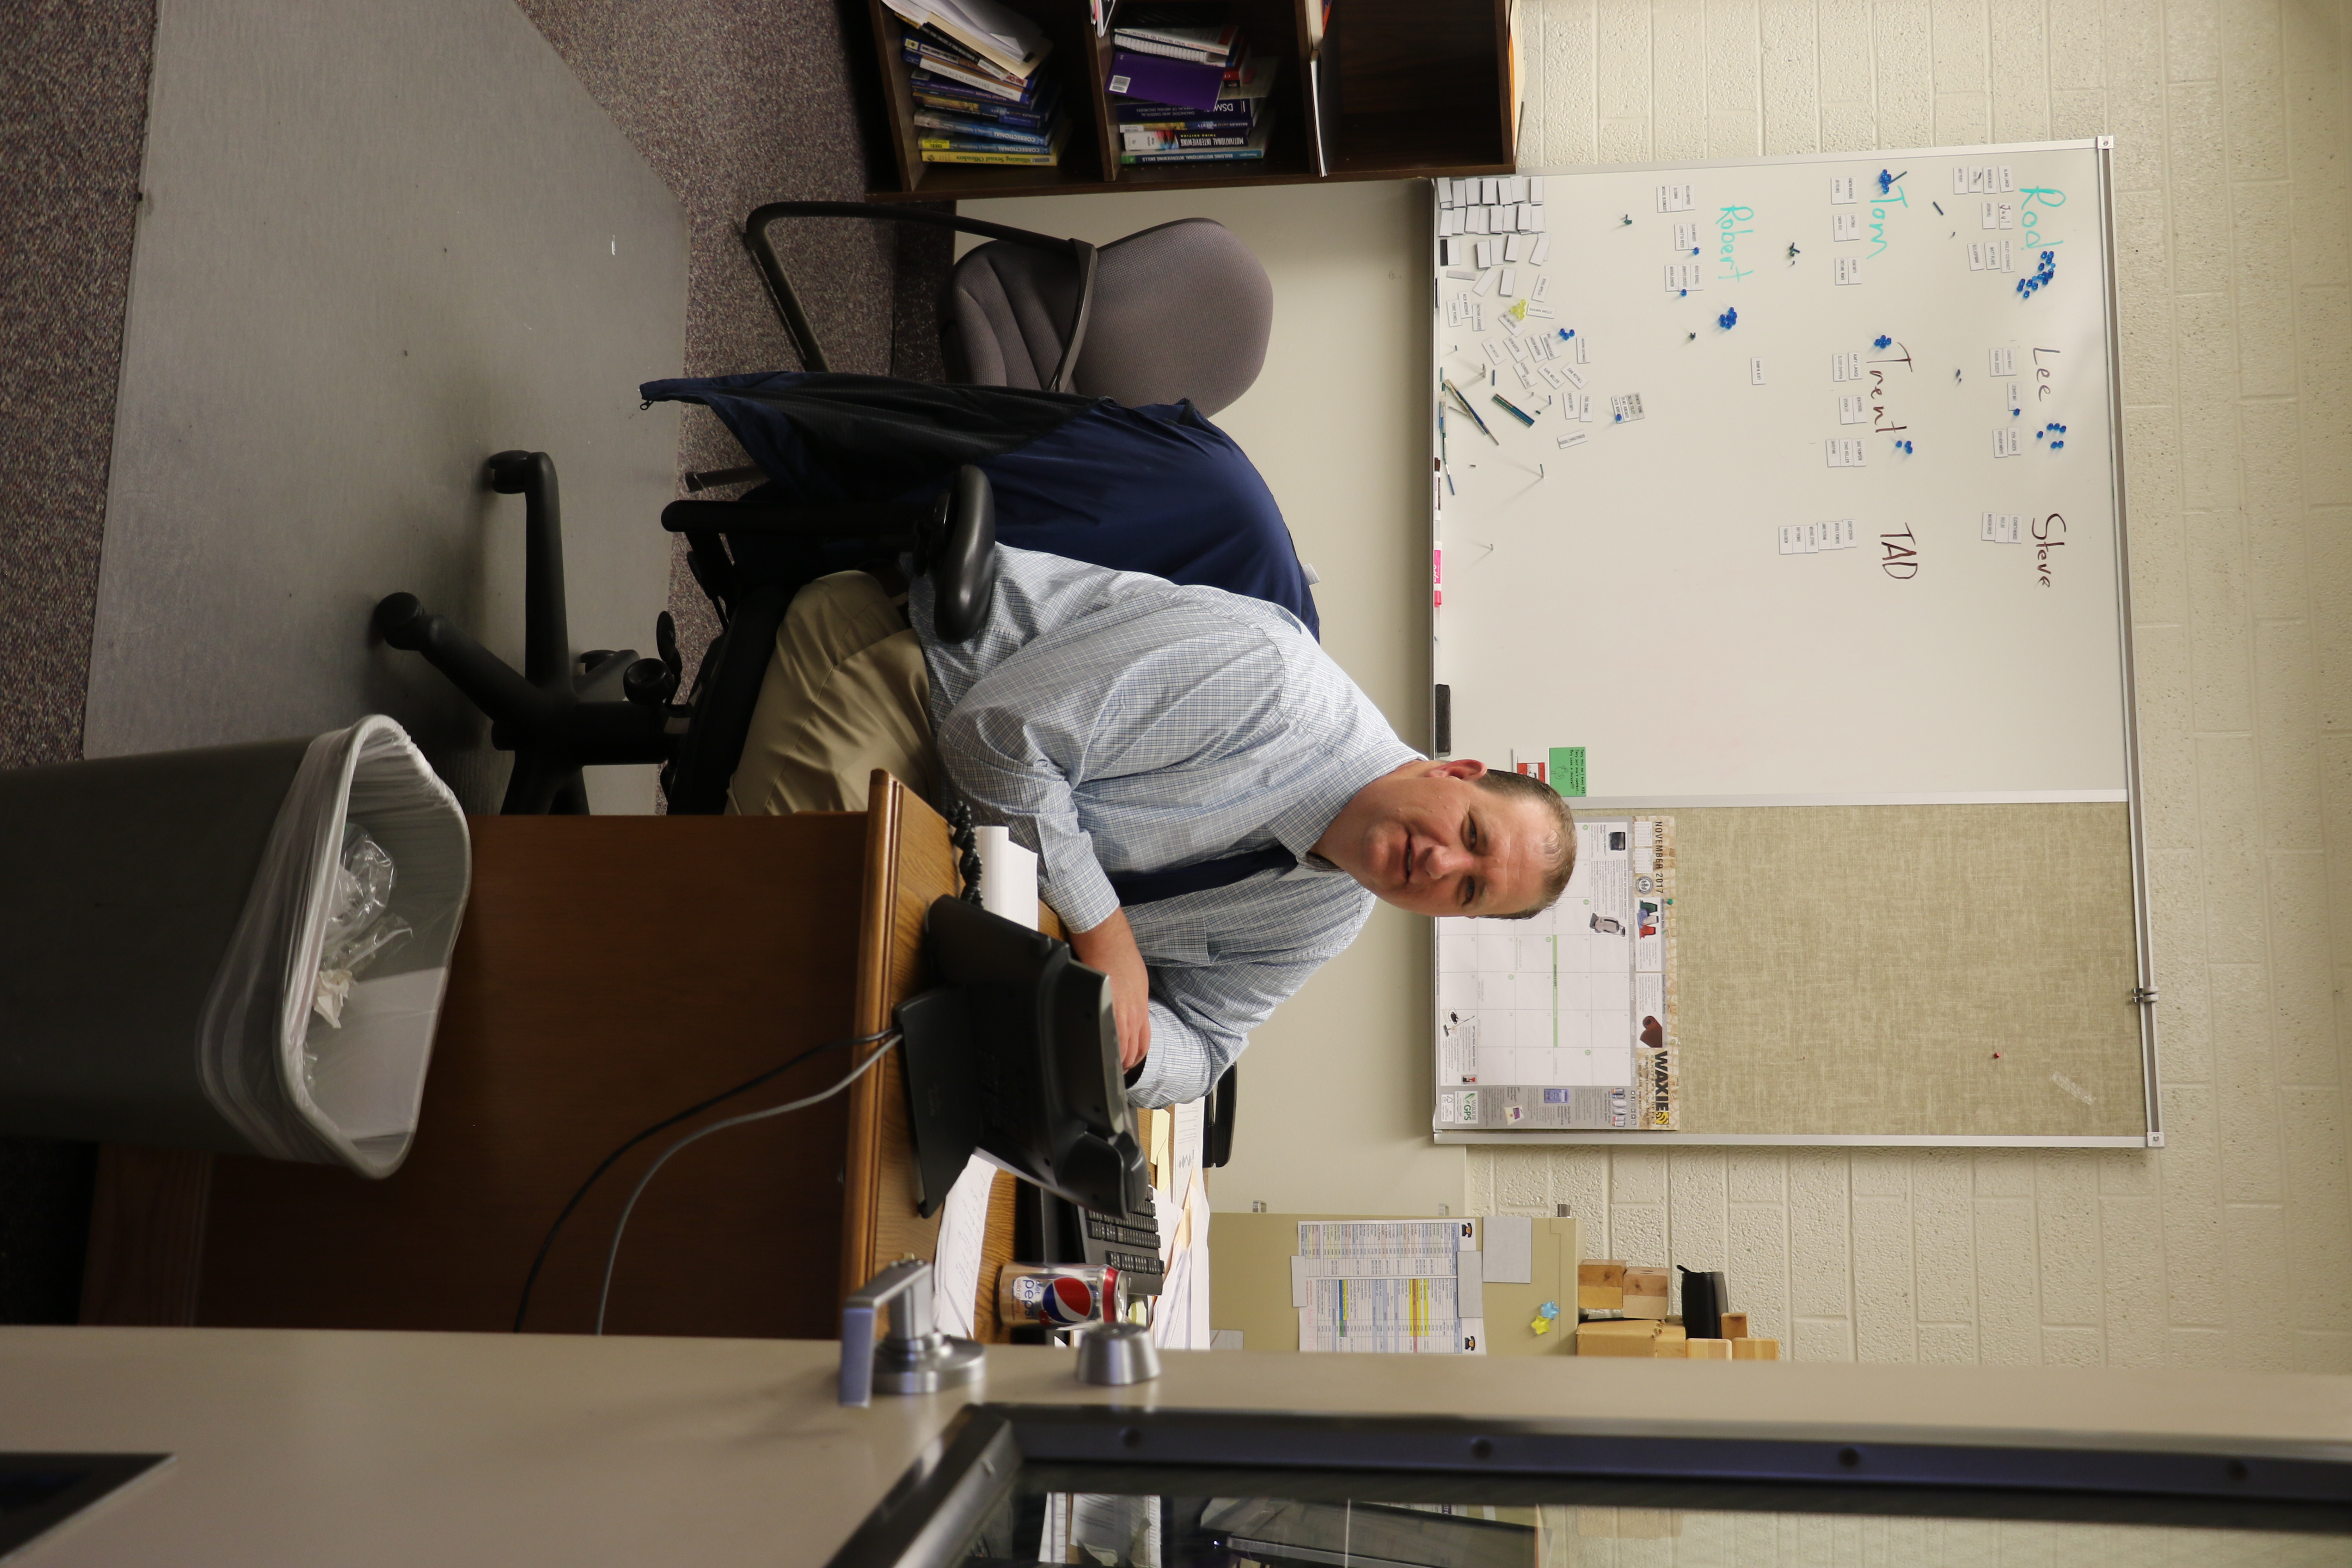 Brett Holbrook works as a counselor for the employees of the Deseret Manufacturing facility in Salt Lake City.